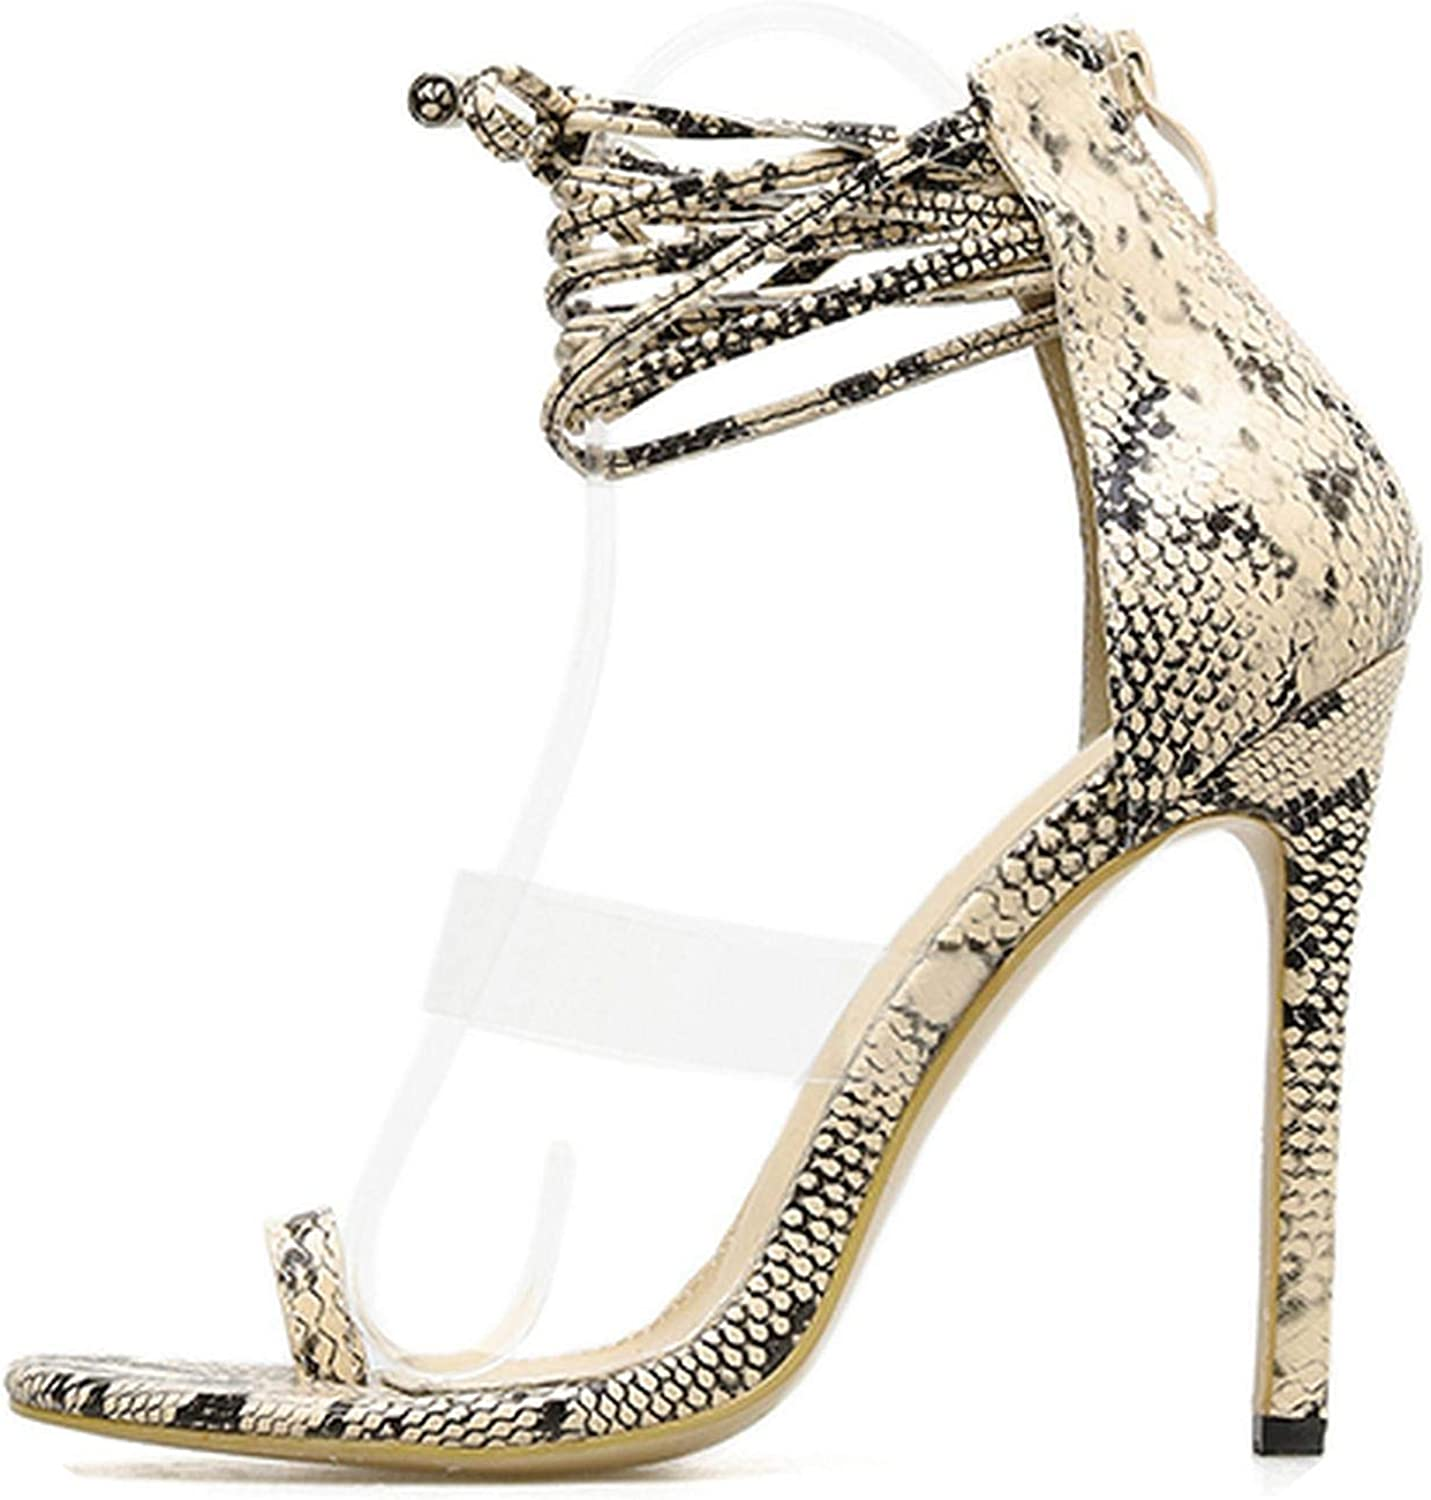 Transparent Sandals Female Fish Mouth Cross Straps Catwalk Women's shoes Snake Pattern Fashion Stiletto Heels